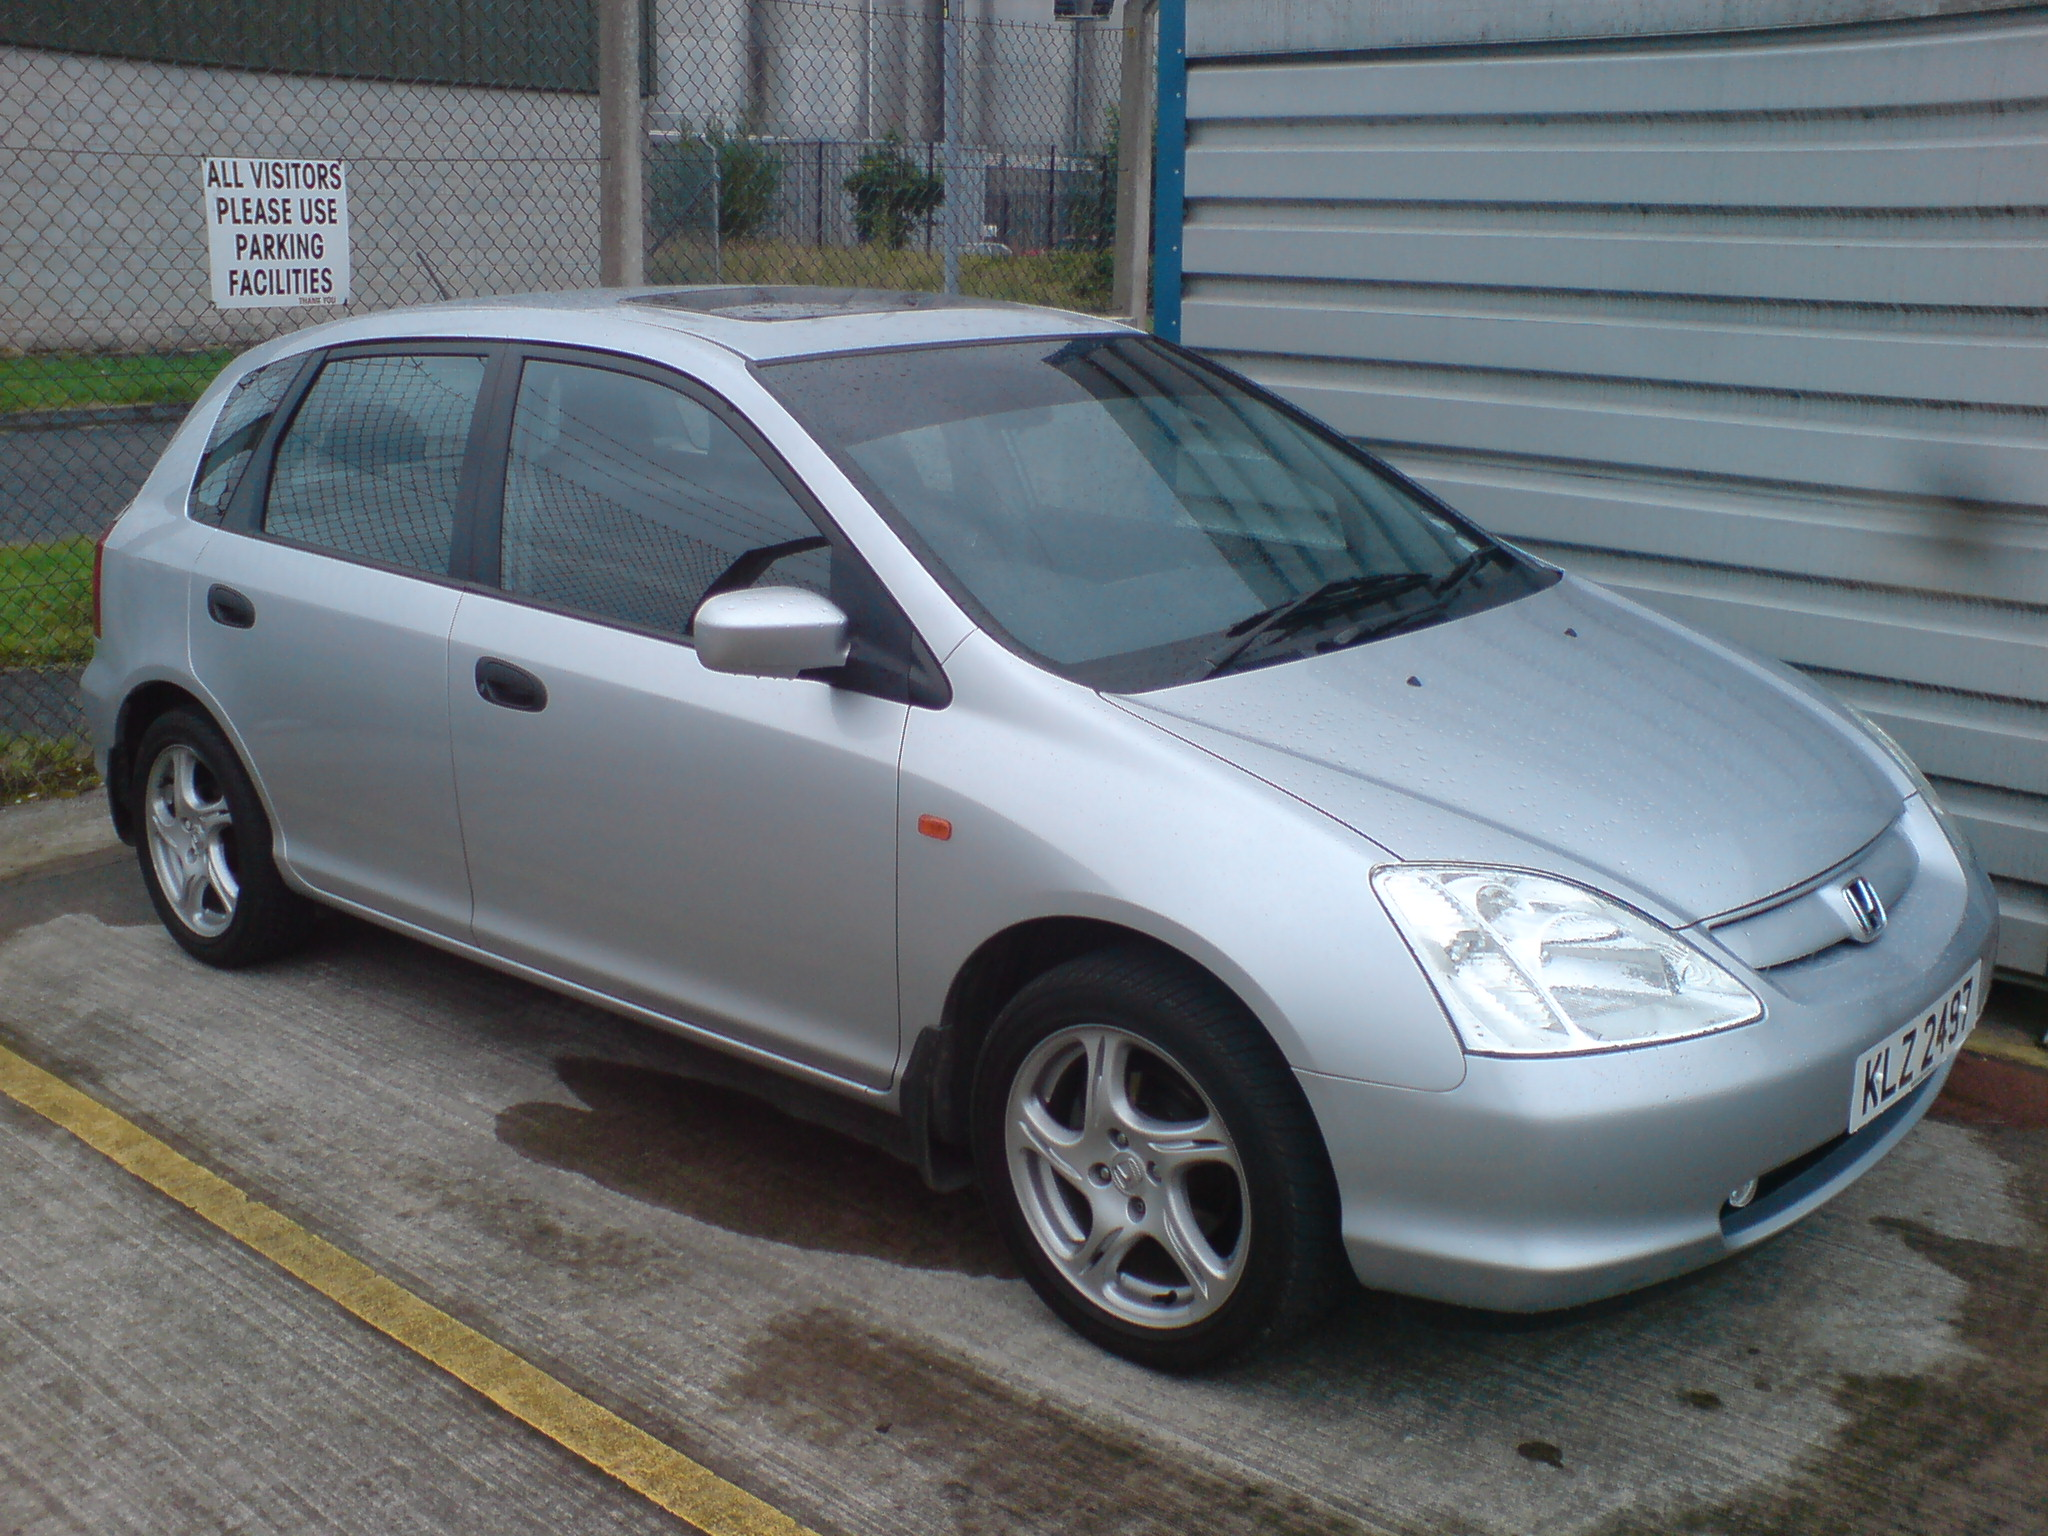 Pictures of honda civic hybrid vii 2002 #1